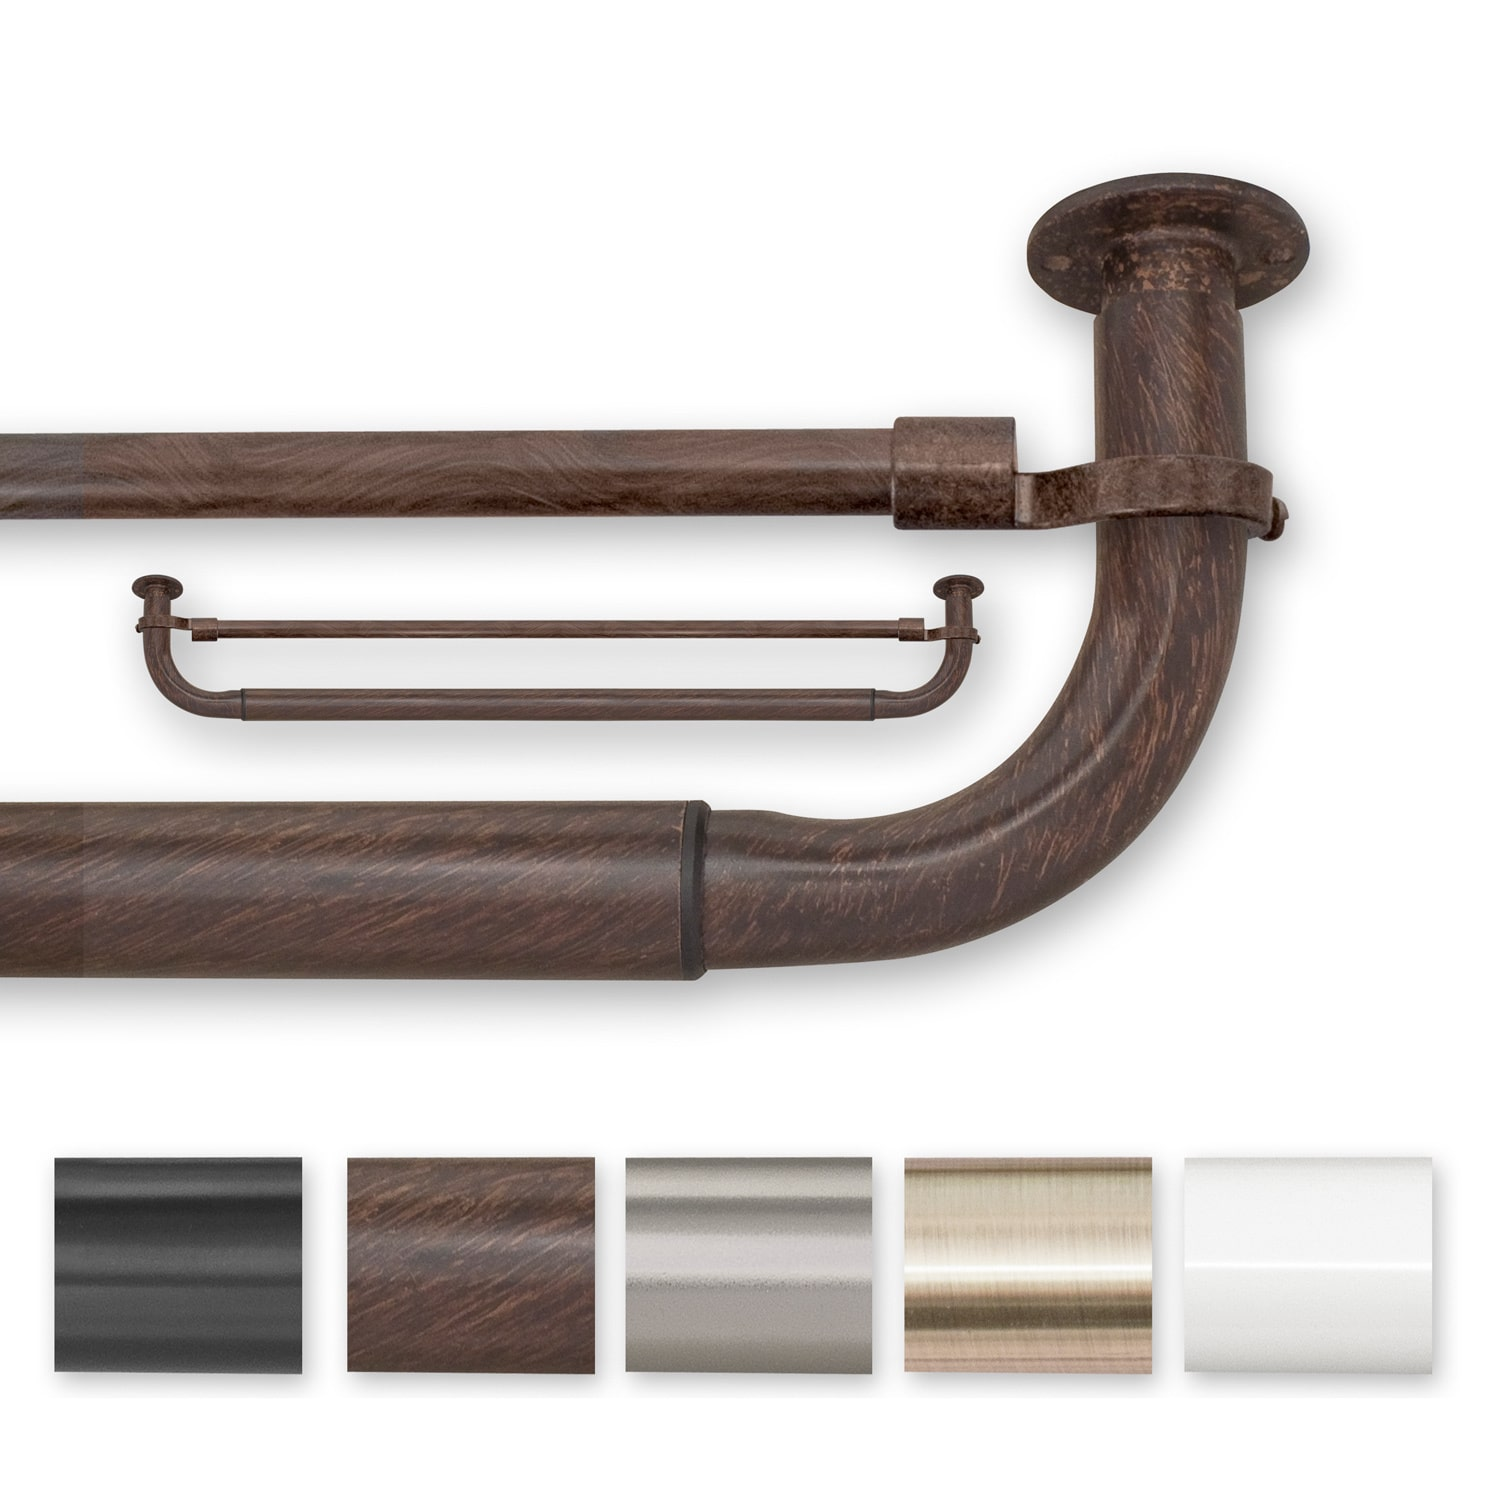 Source Global Enterprises Pinnacle Barricade 96 to 144 Inches Double Window Hardware by Overstock